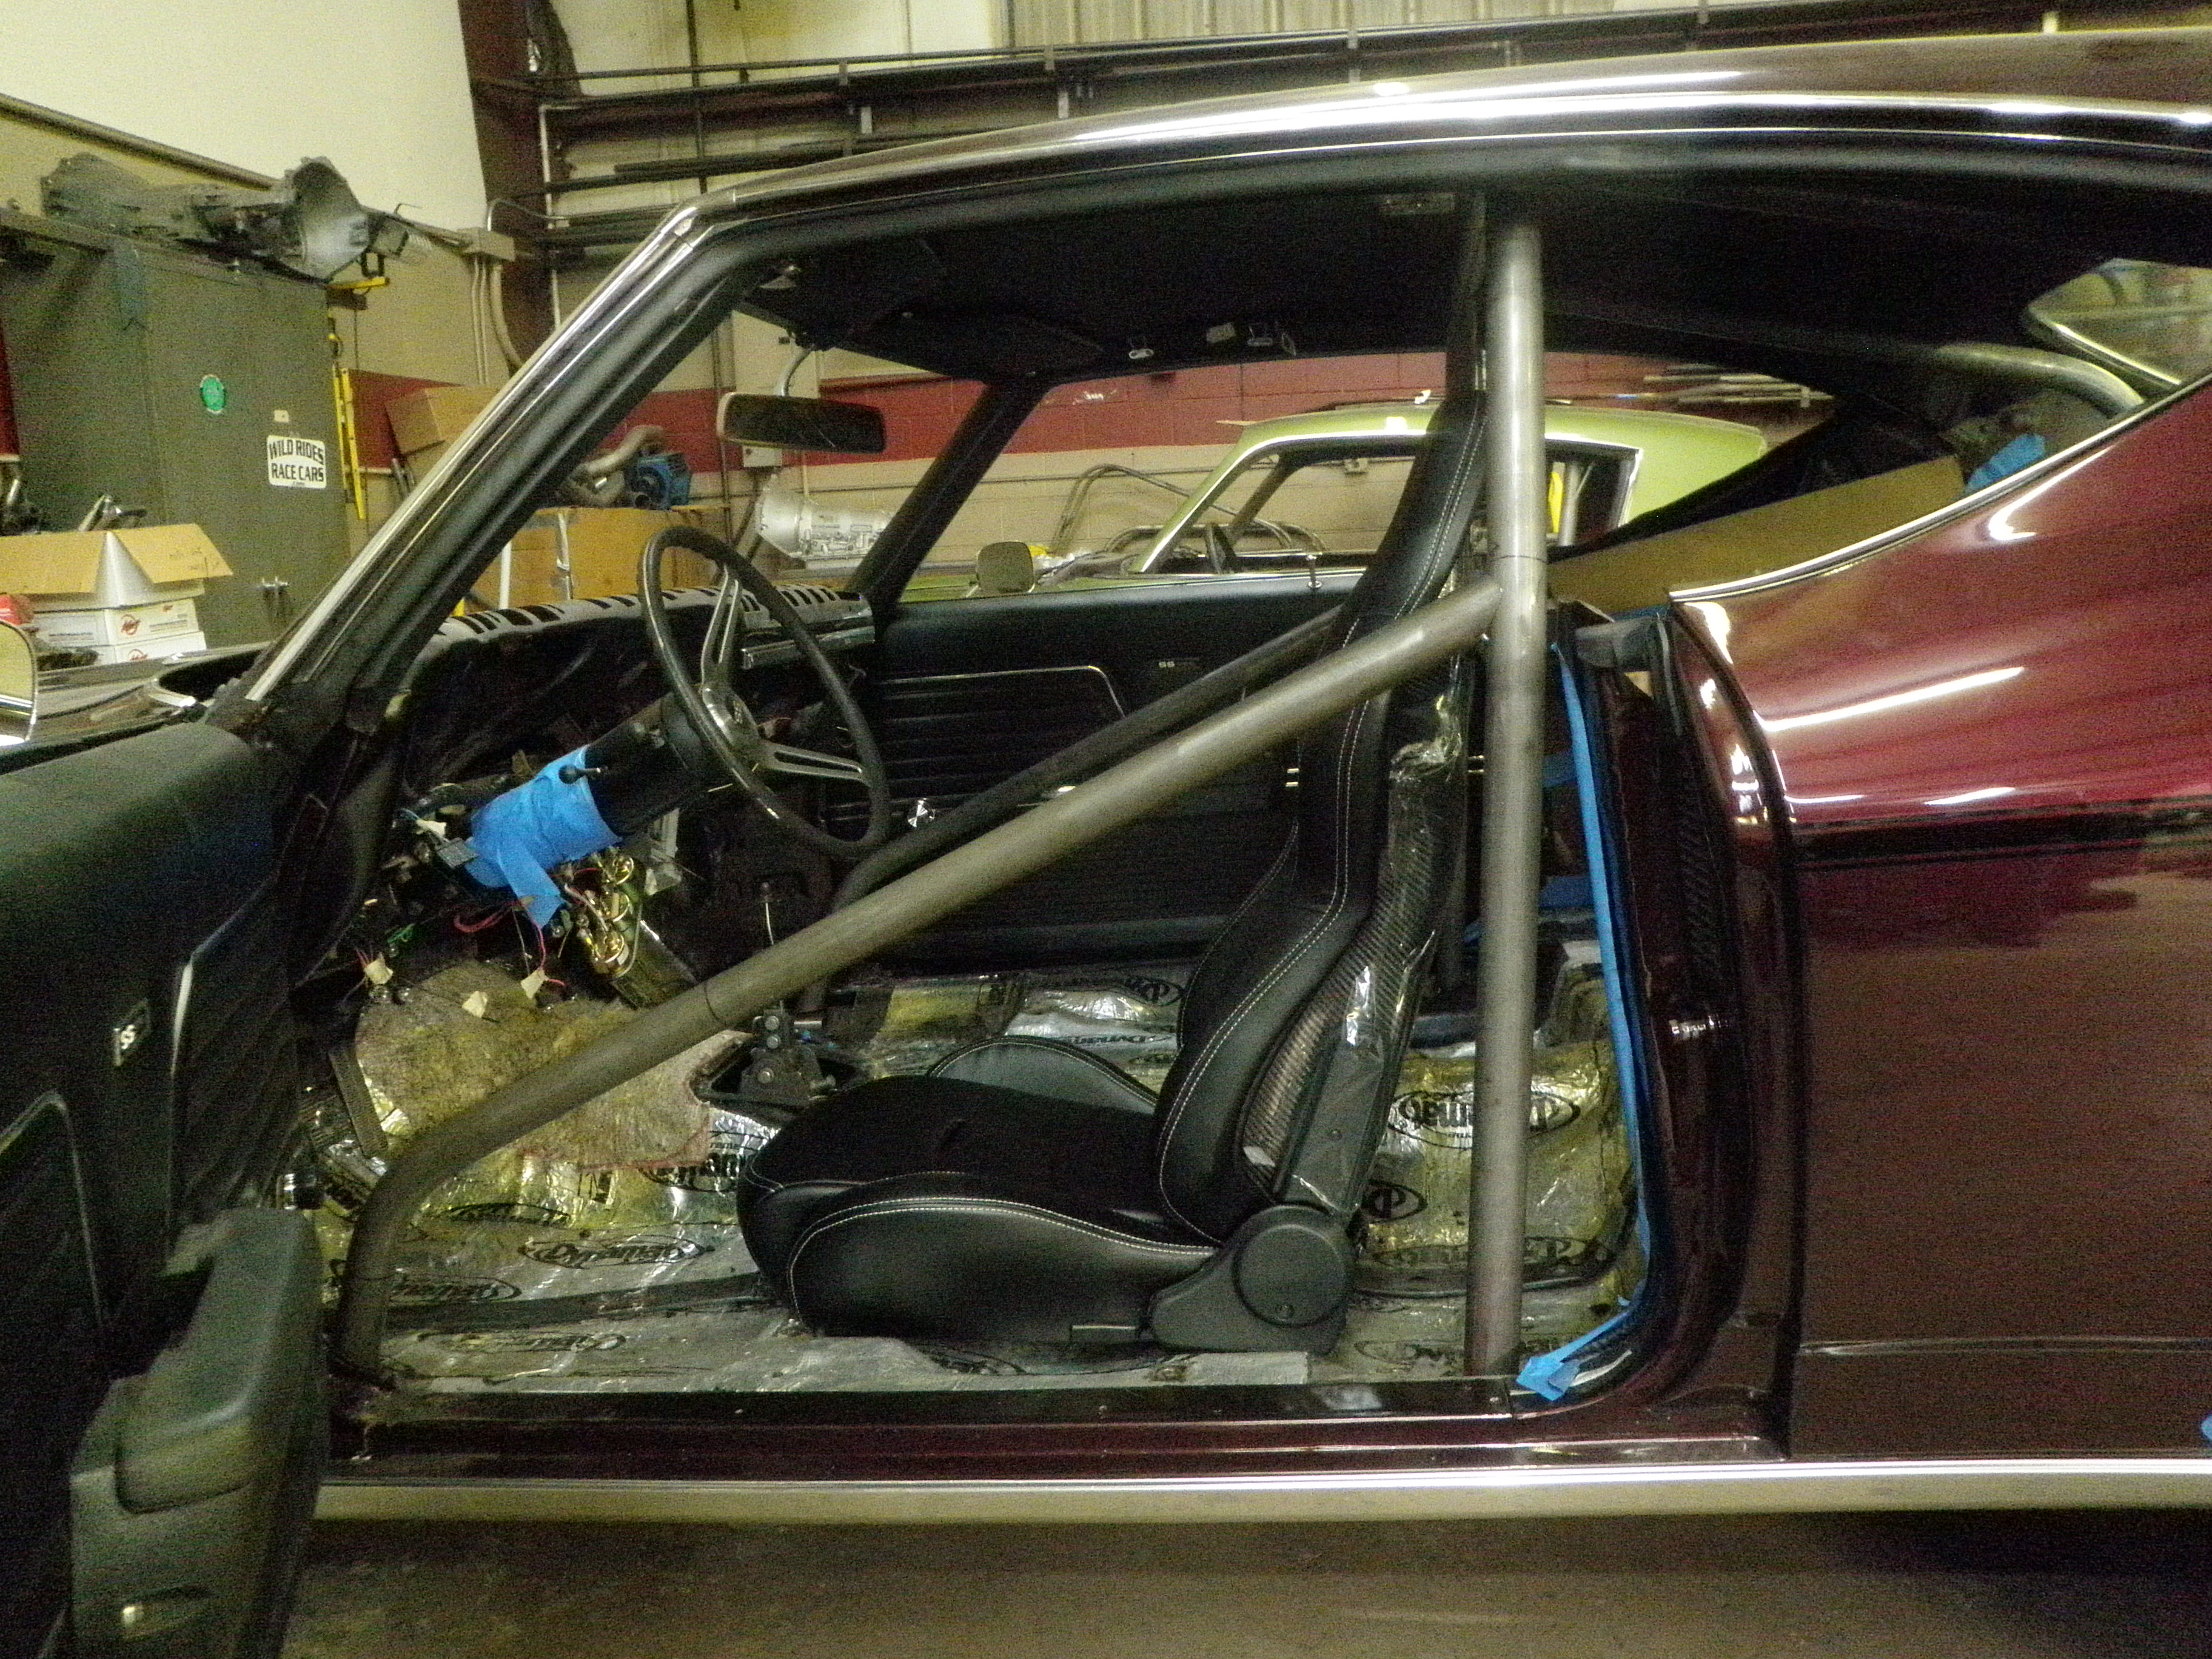 Picture of: Gm A Body 6pt Exact Fit Roll Bar Wild Rides